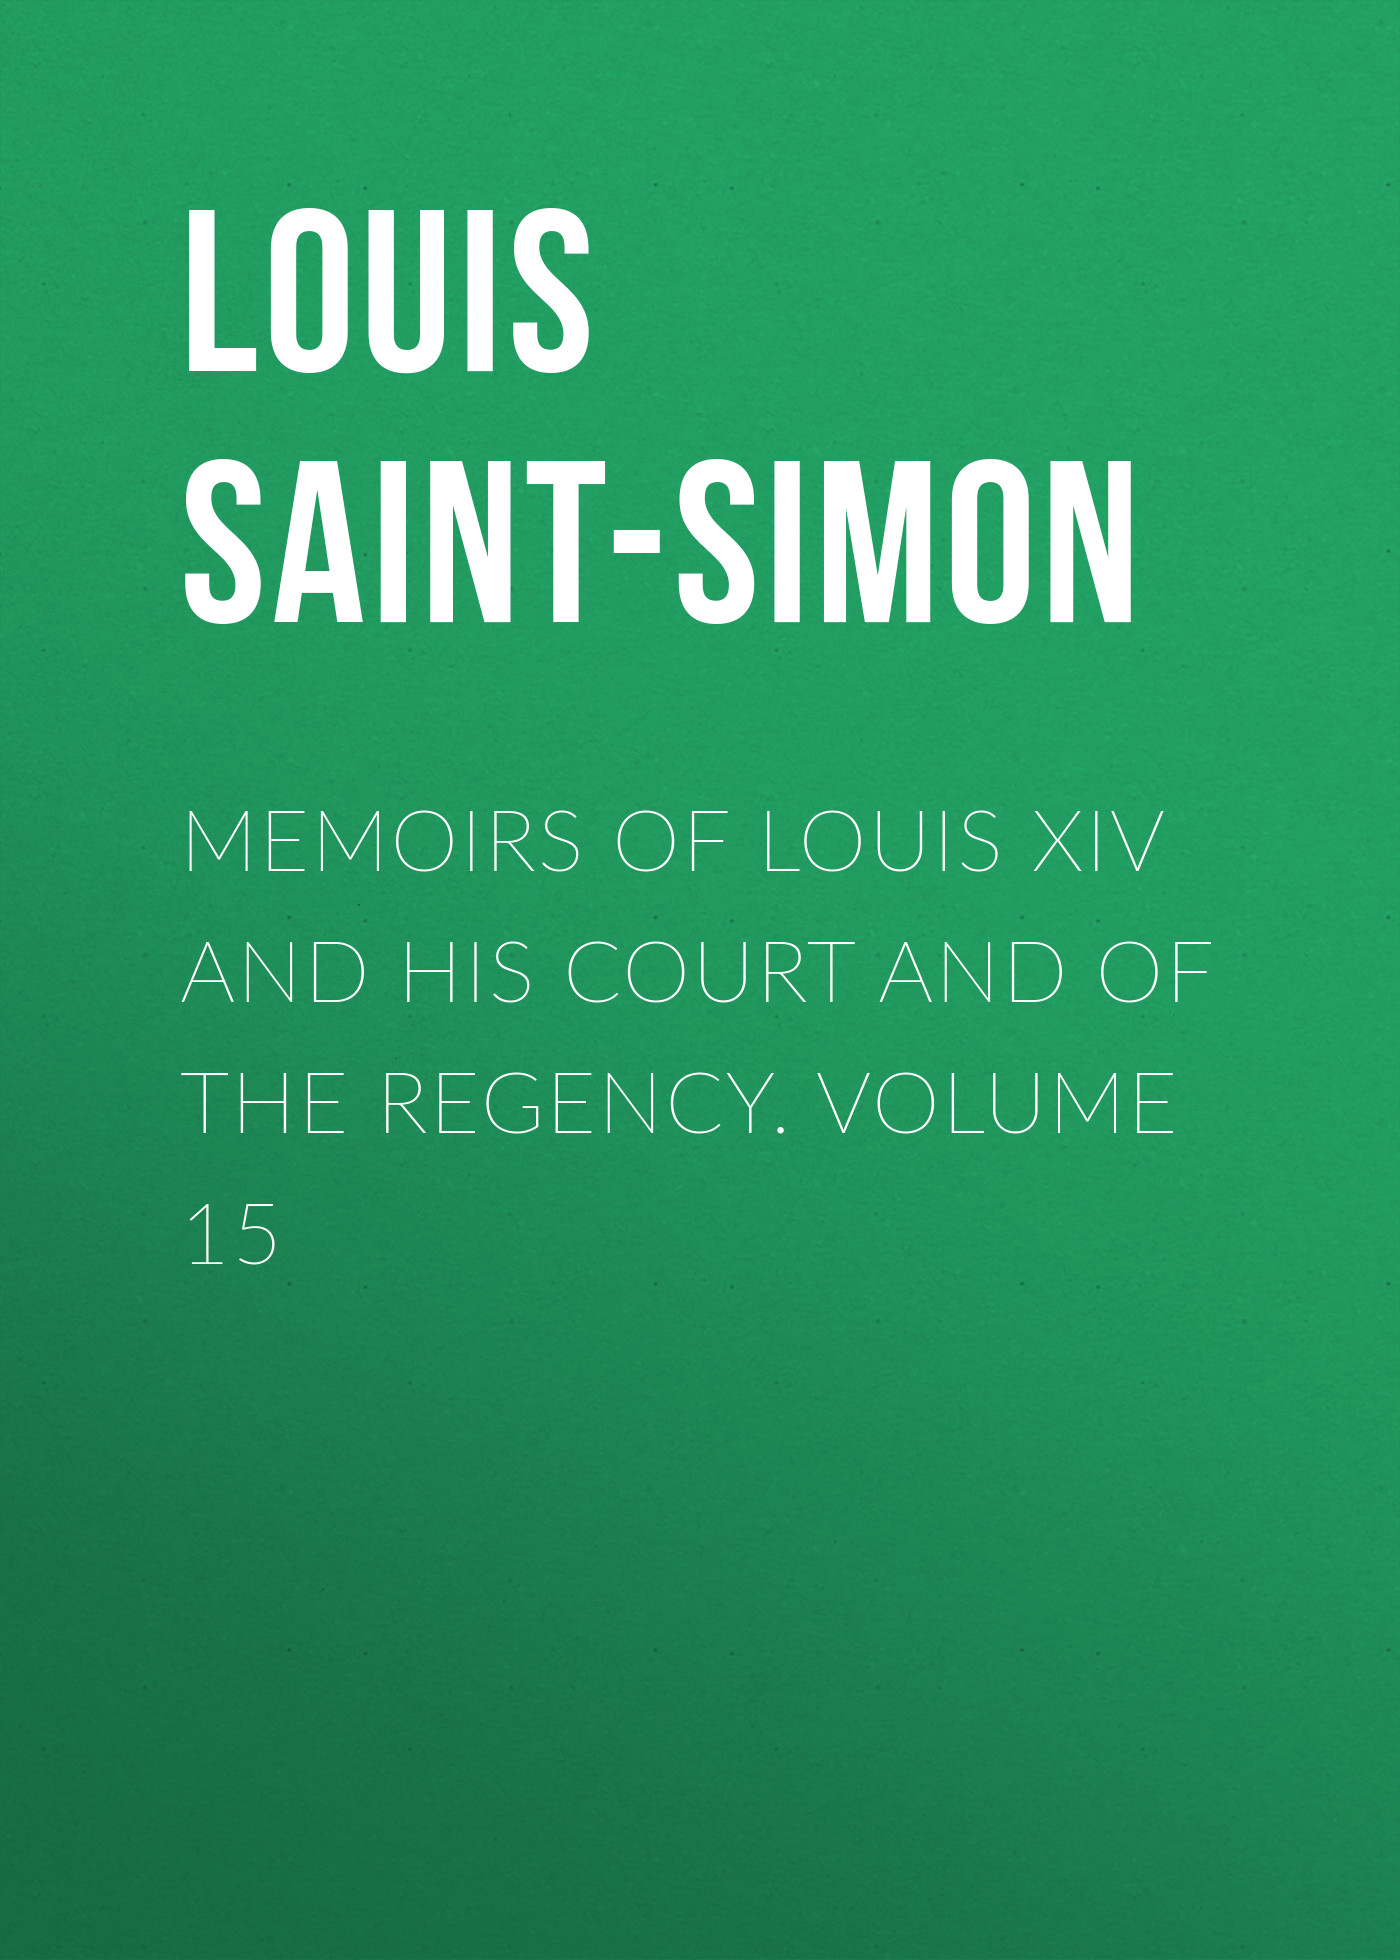 Фото - Louis Saint-Simon Memoirs of Louis XIV and His Court and of the Regency. Volume 15 jules marcou life letters and works of louis agassiz volume i